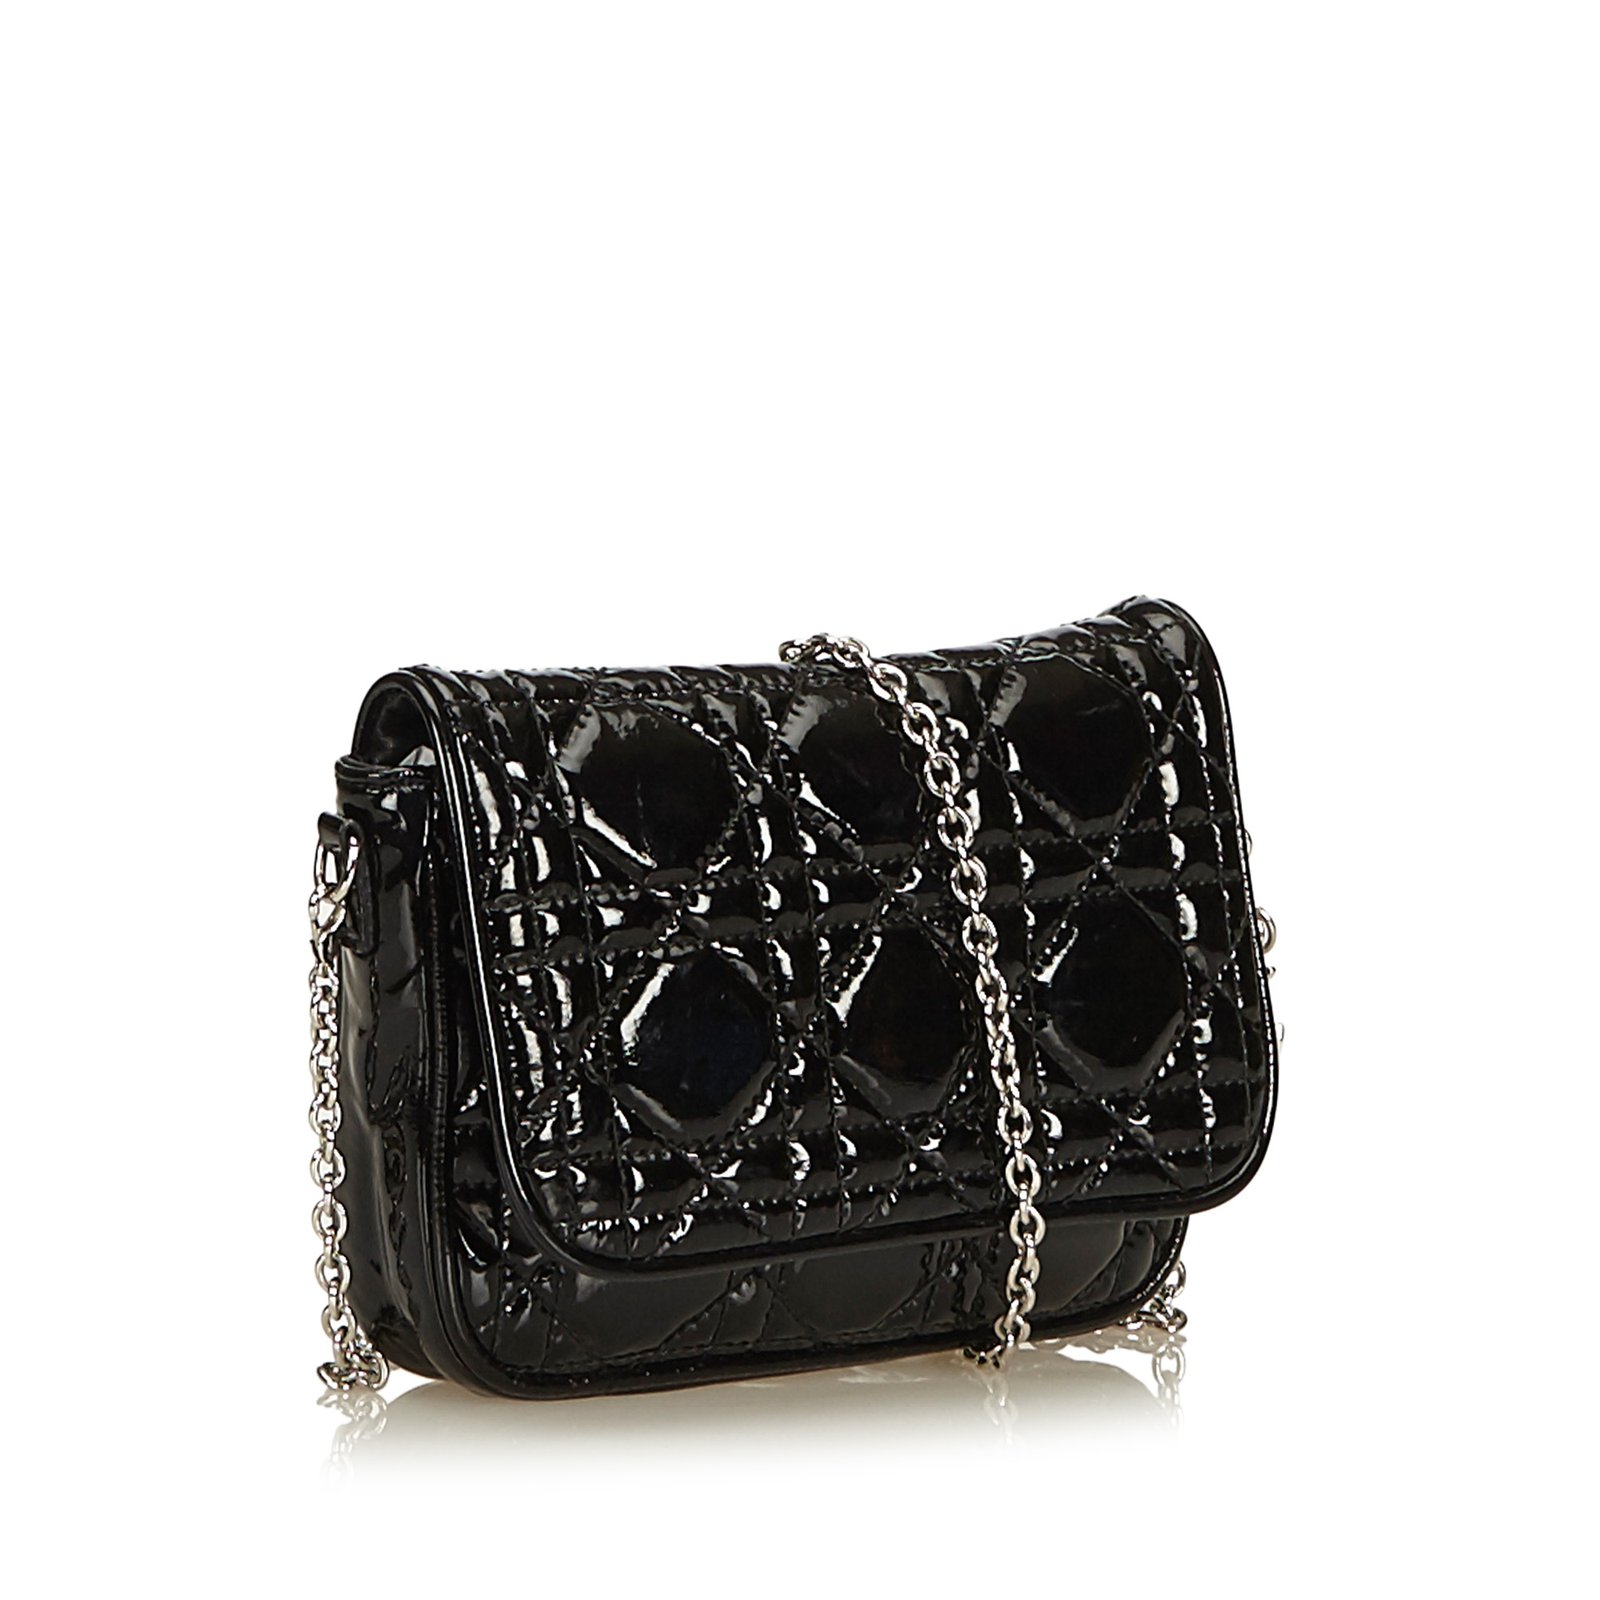 074114fc7669 Dior Cannage Patent Leather Crossbody Bag Handbags Leather